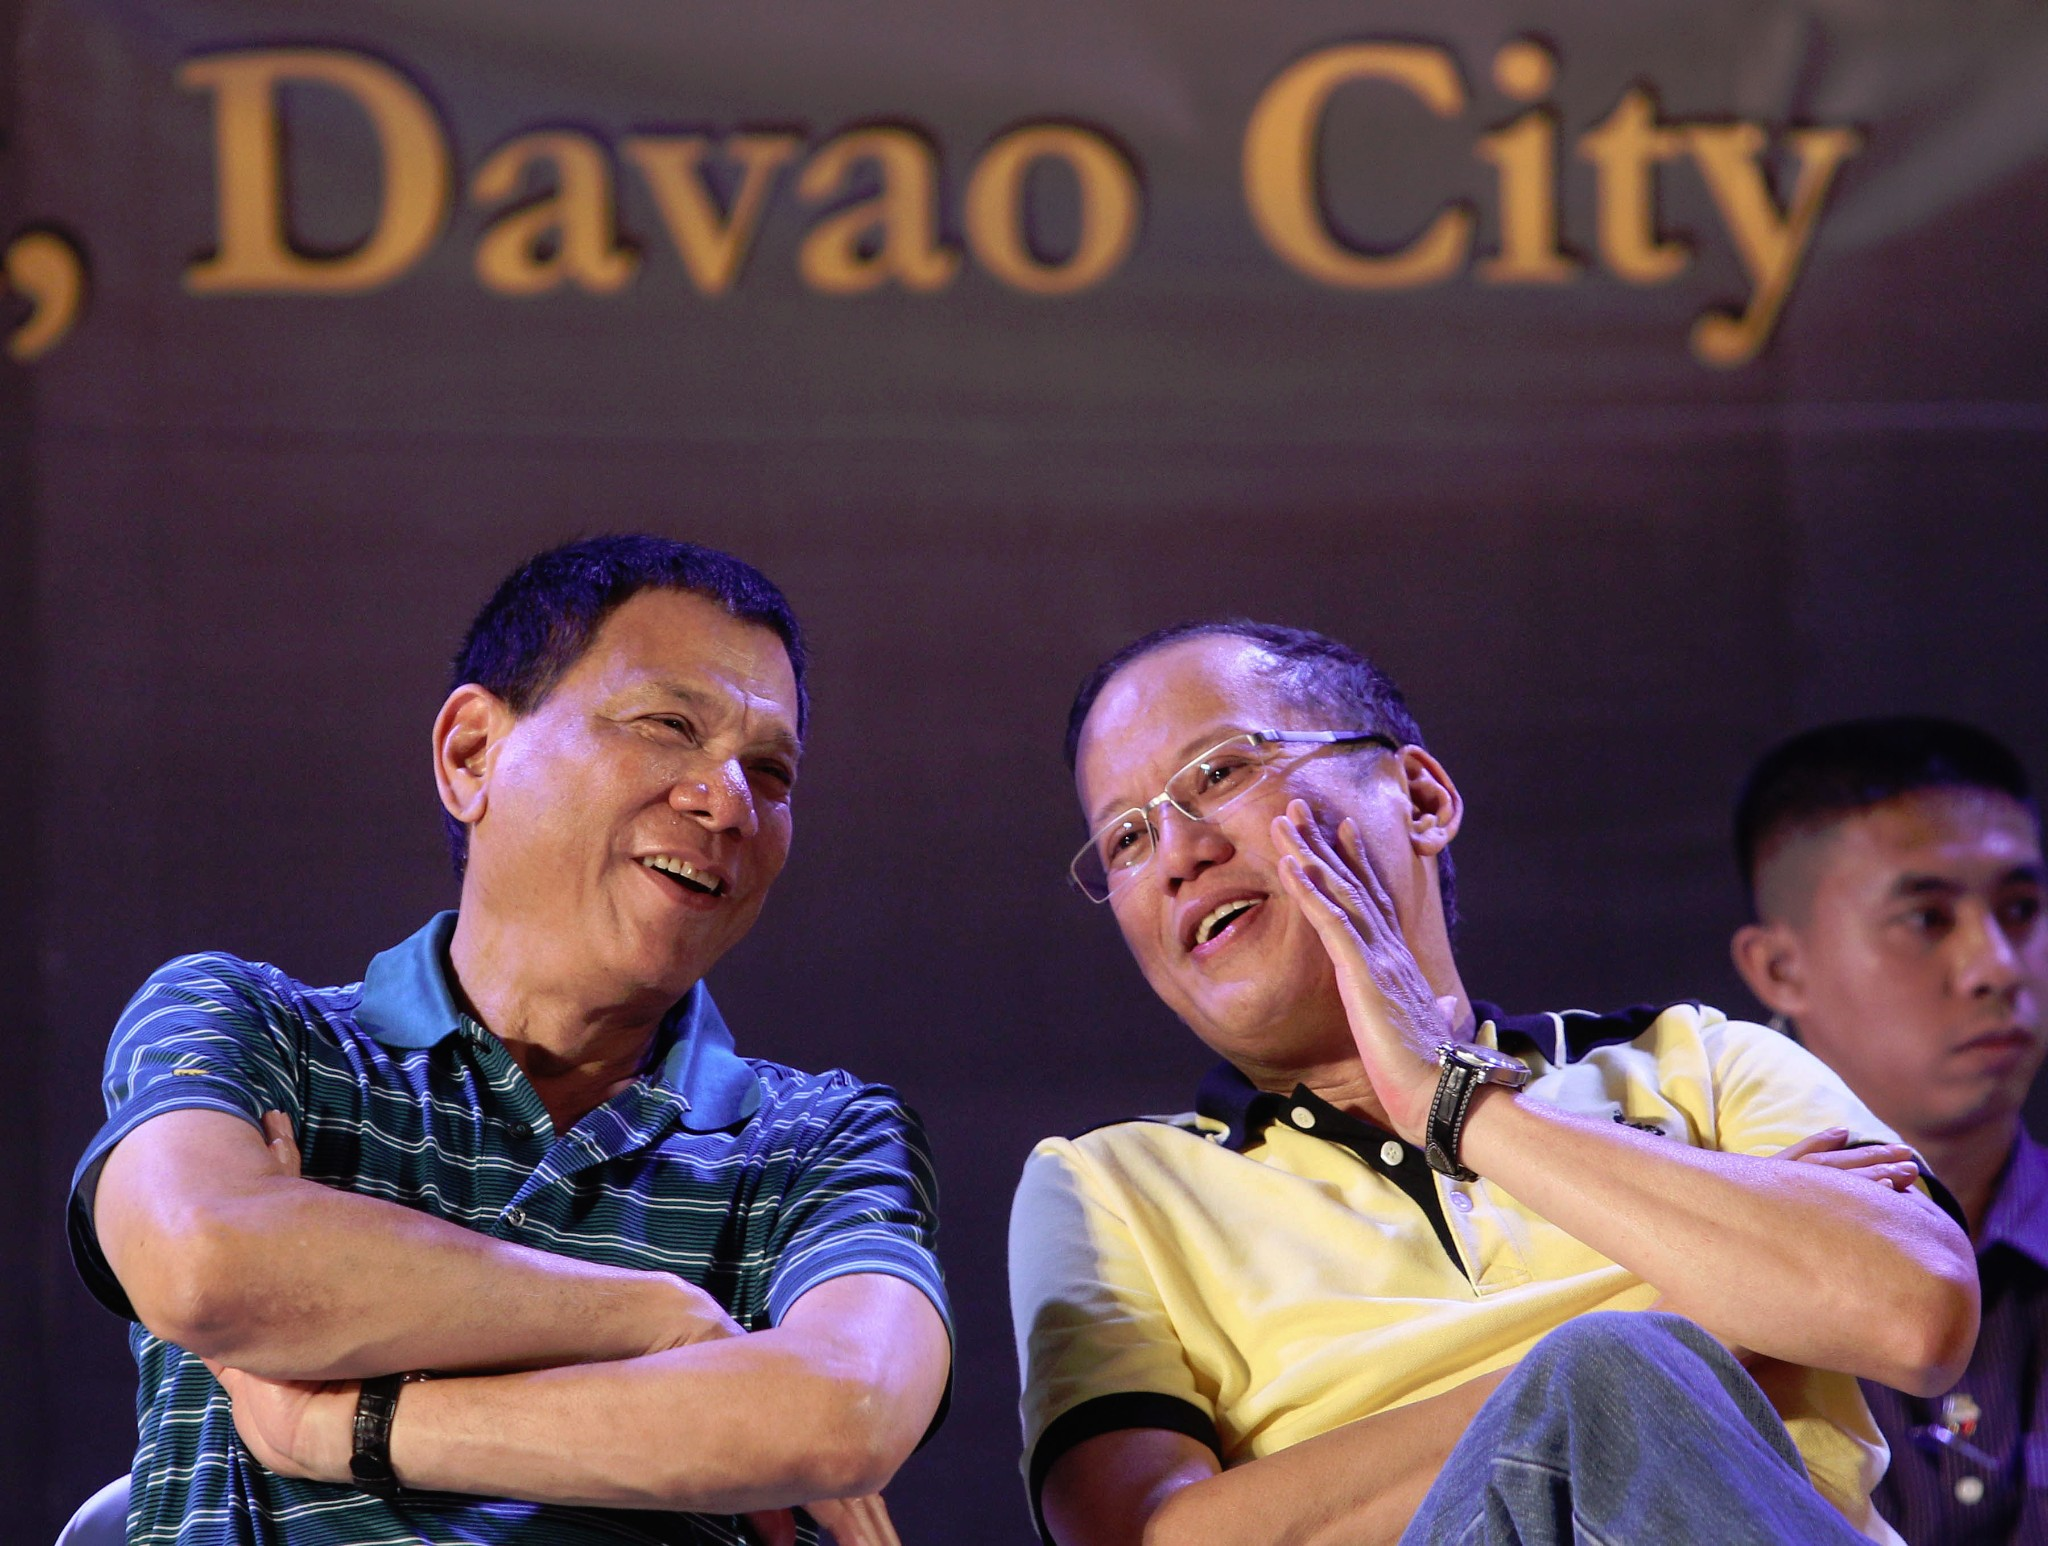 Former Philippine President Benigno S. Aquino III converses with then Davao City Vice Mayor Rodrigo Duterte in 2013.